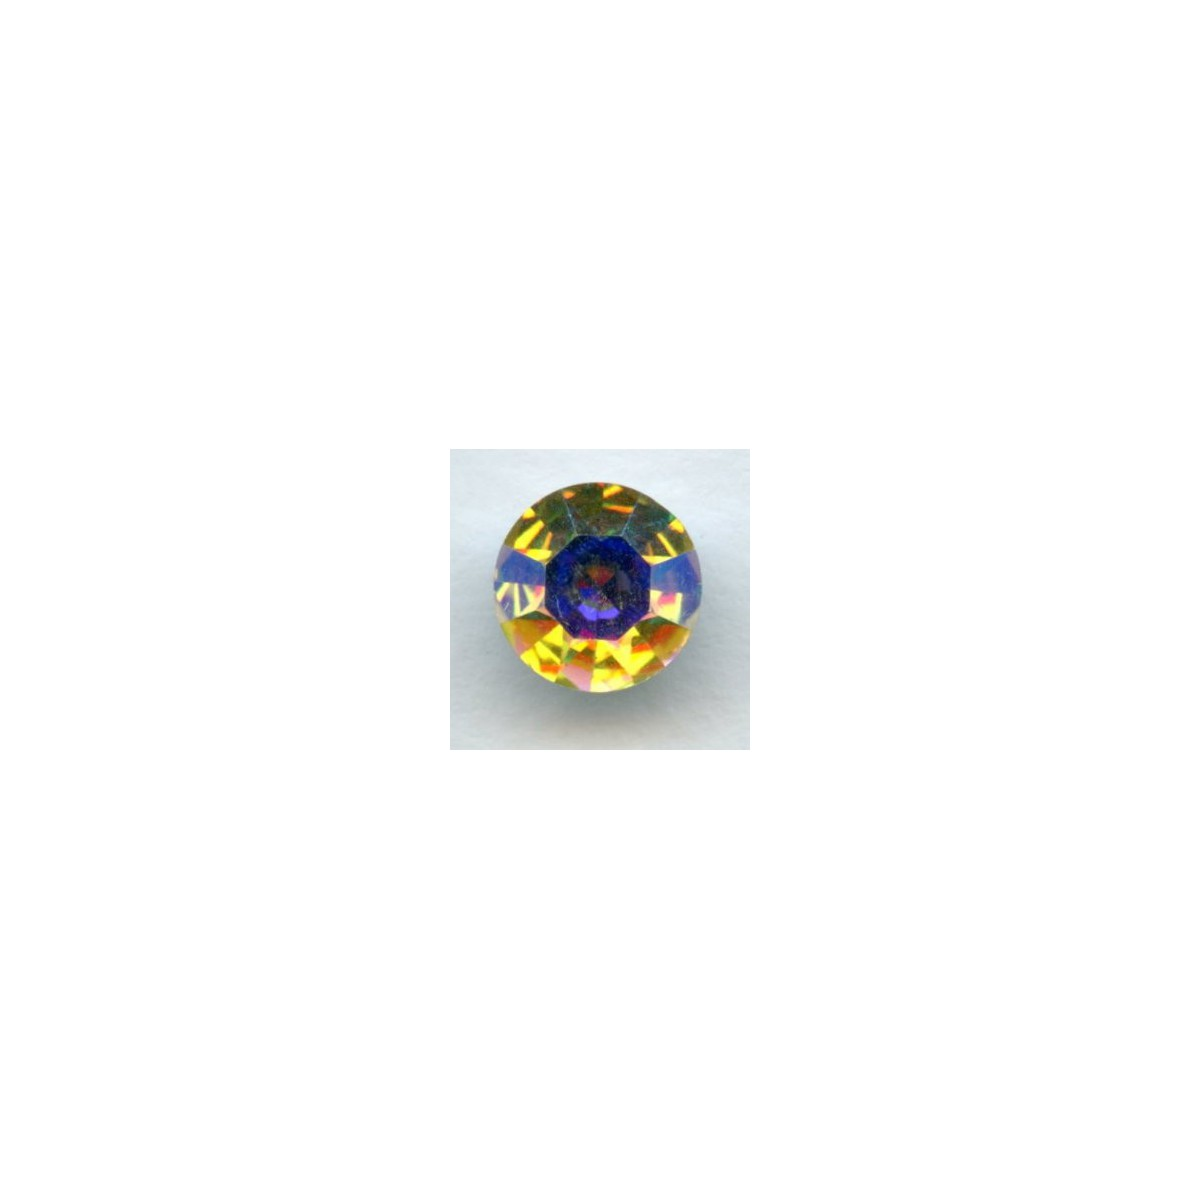 Round Crystal AB Foiled Rhinestones Pointed Back SS39